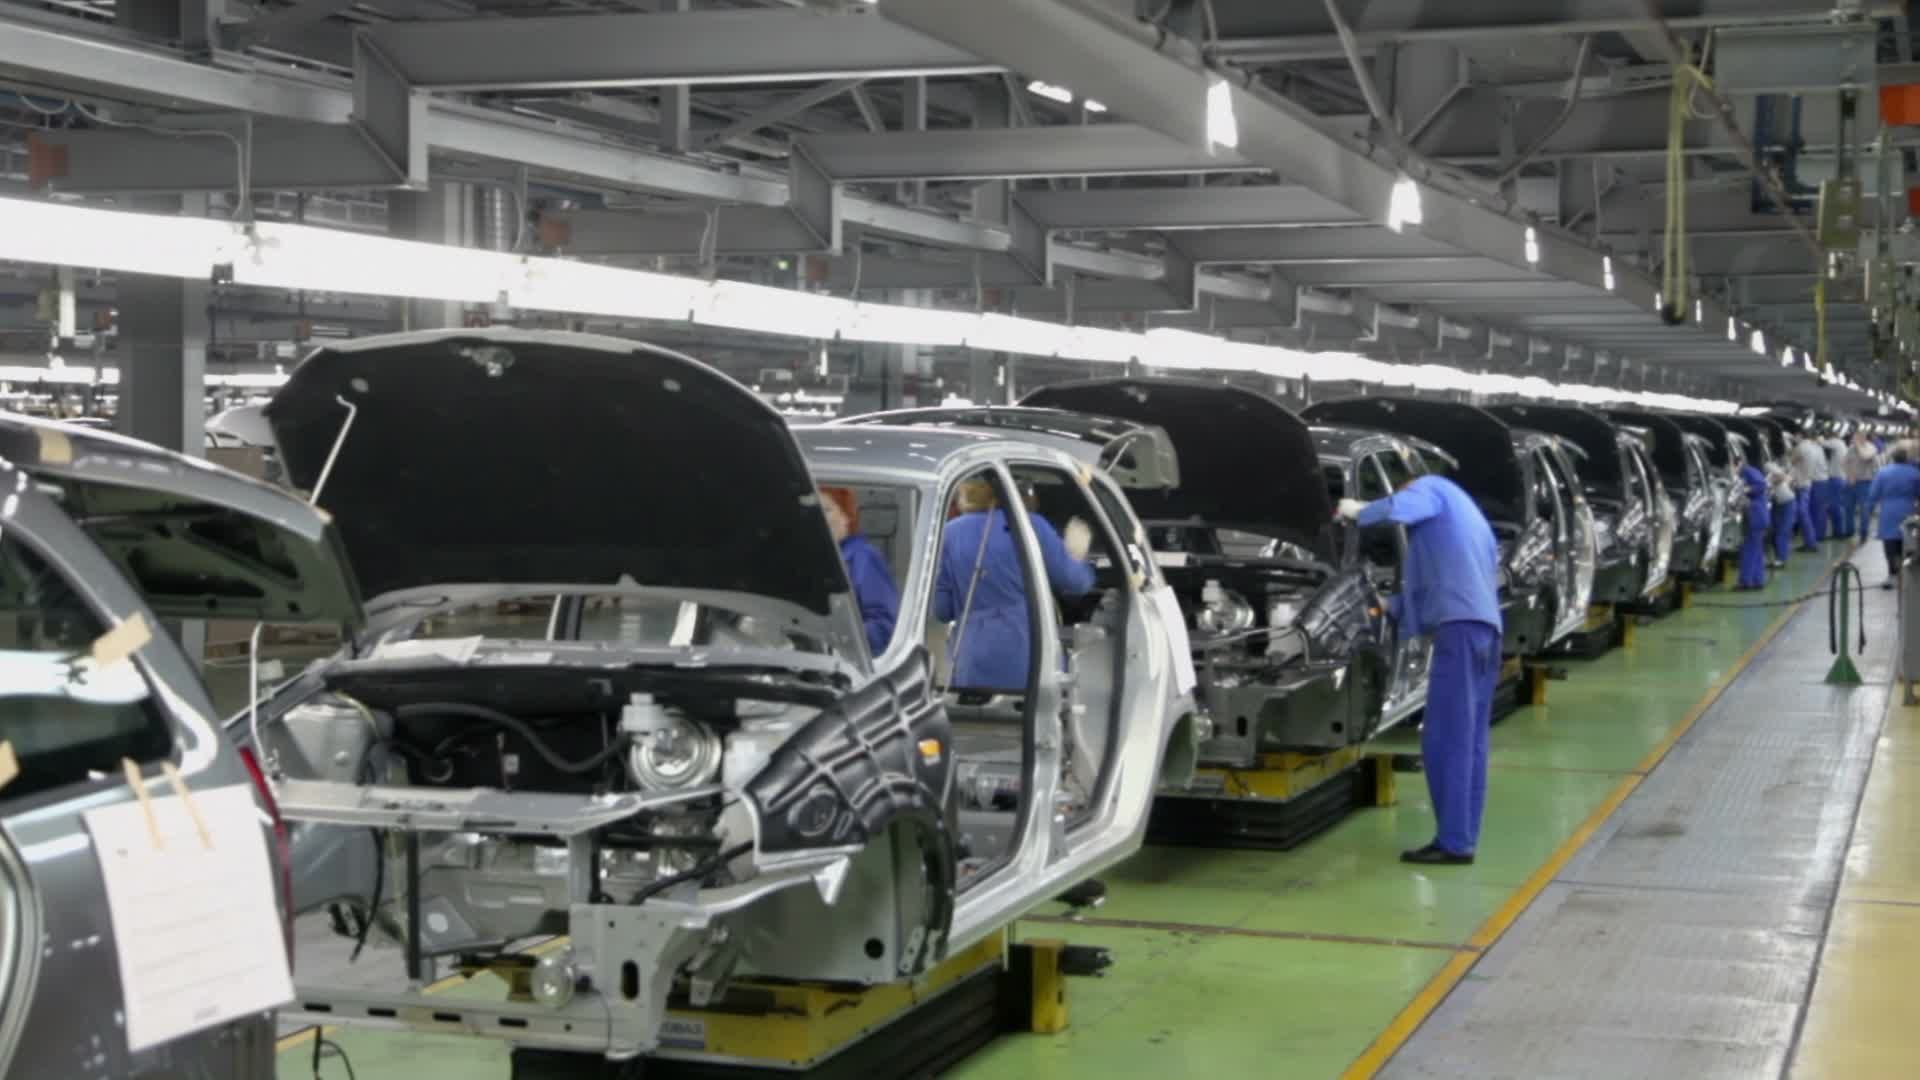 Workers Assemble Cars Lada Kalina On Conveyer Of Factory Vaz Stock